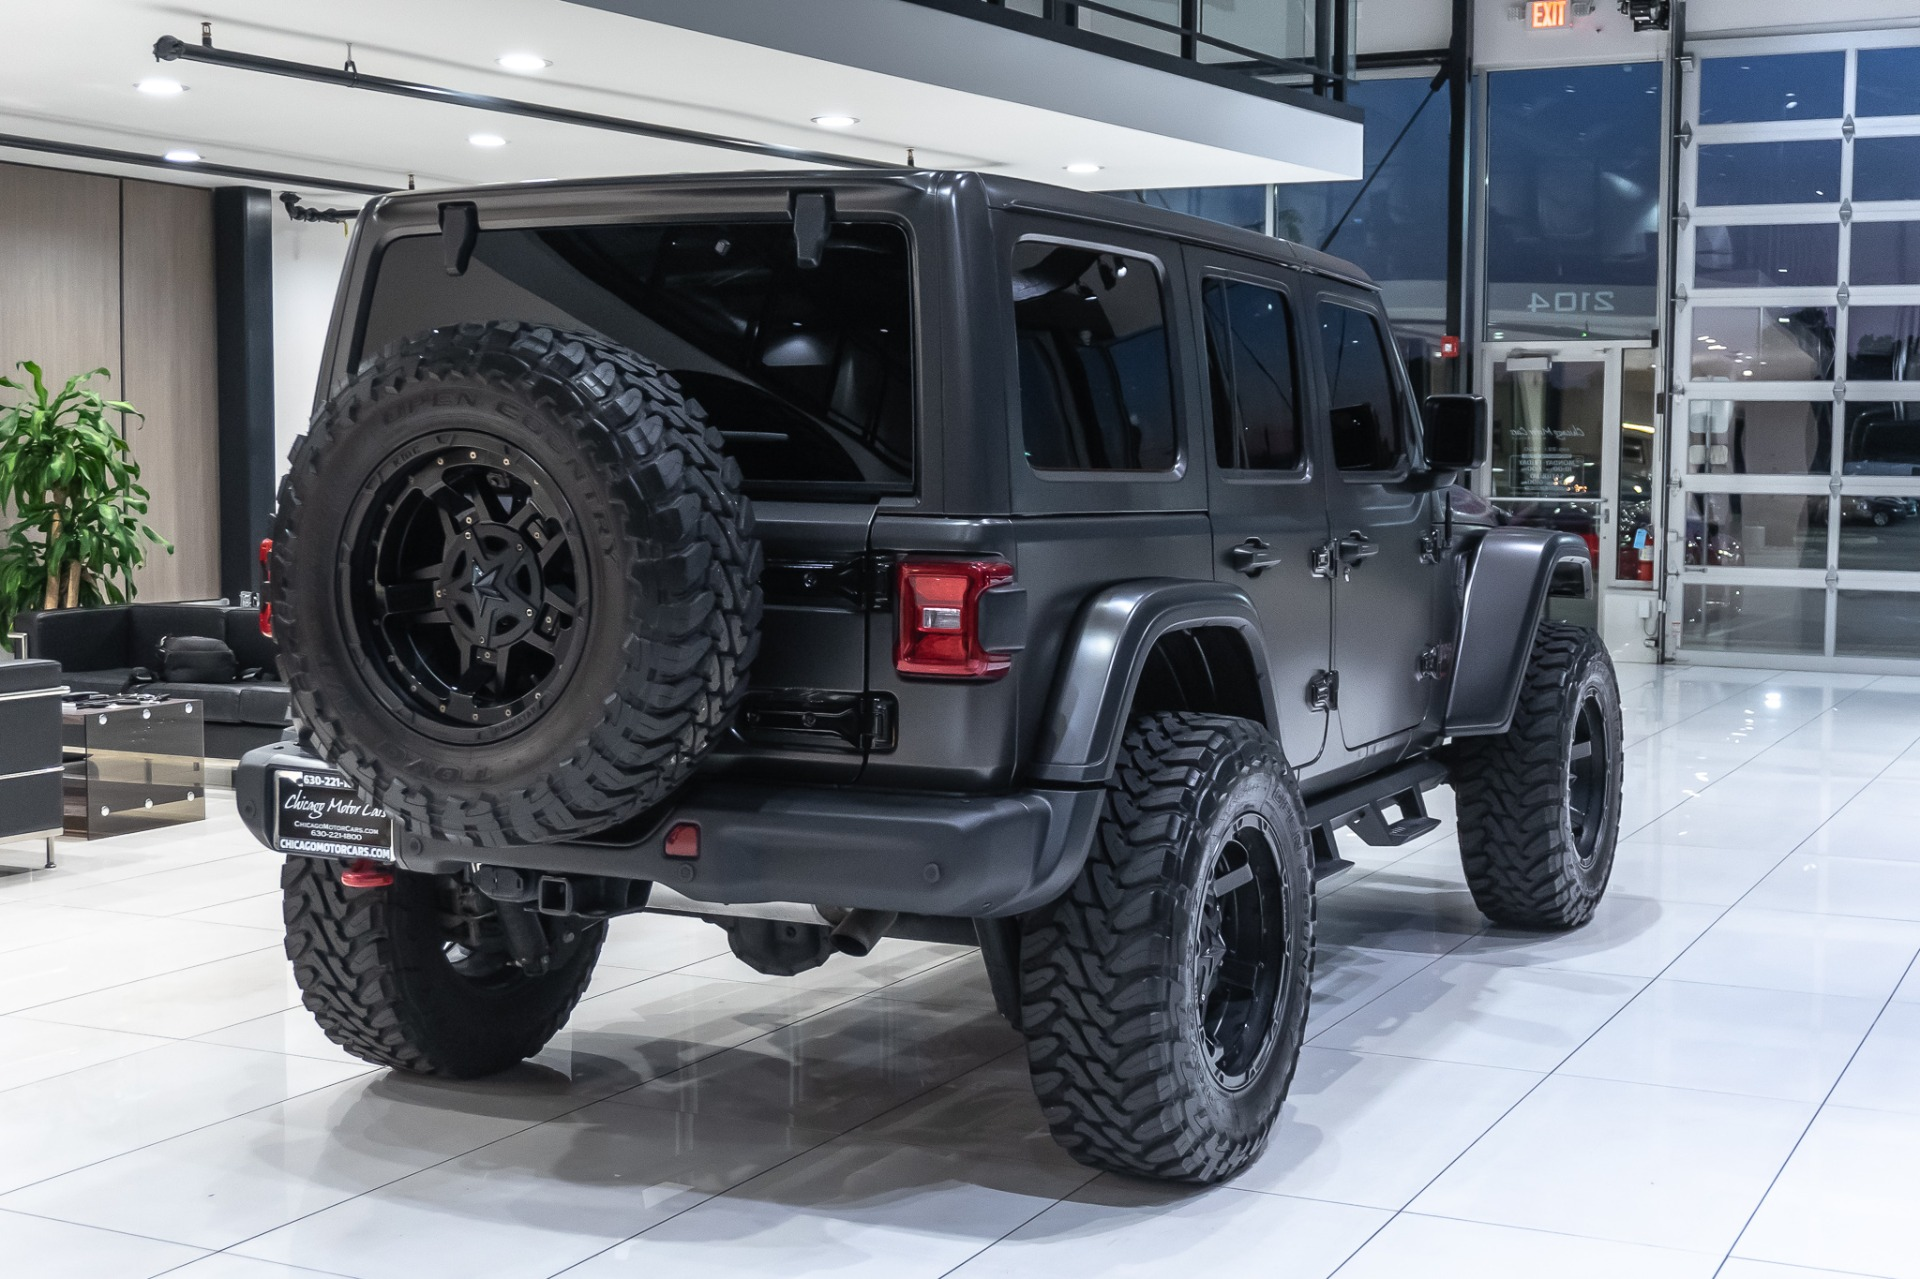 Used-2018-Jeep-Wrangler-Unlimited-Rubicon-JL-Upgrades-1-of-1-Only-5k-Miles-LOADED